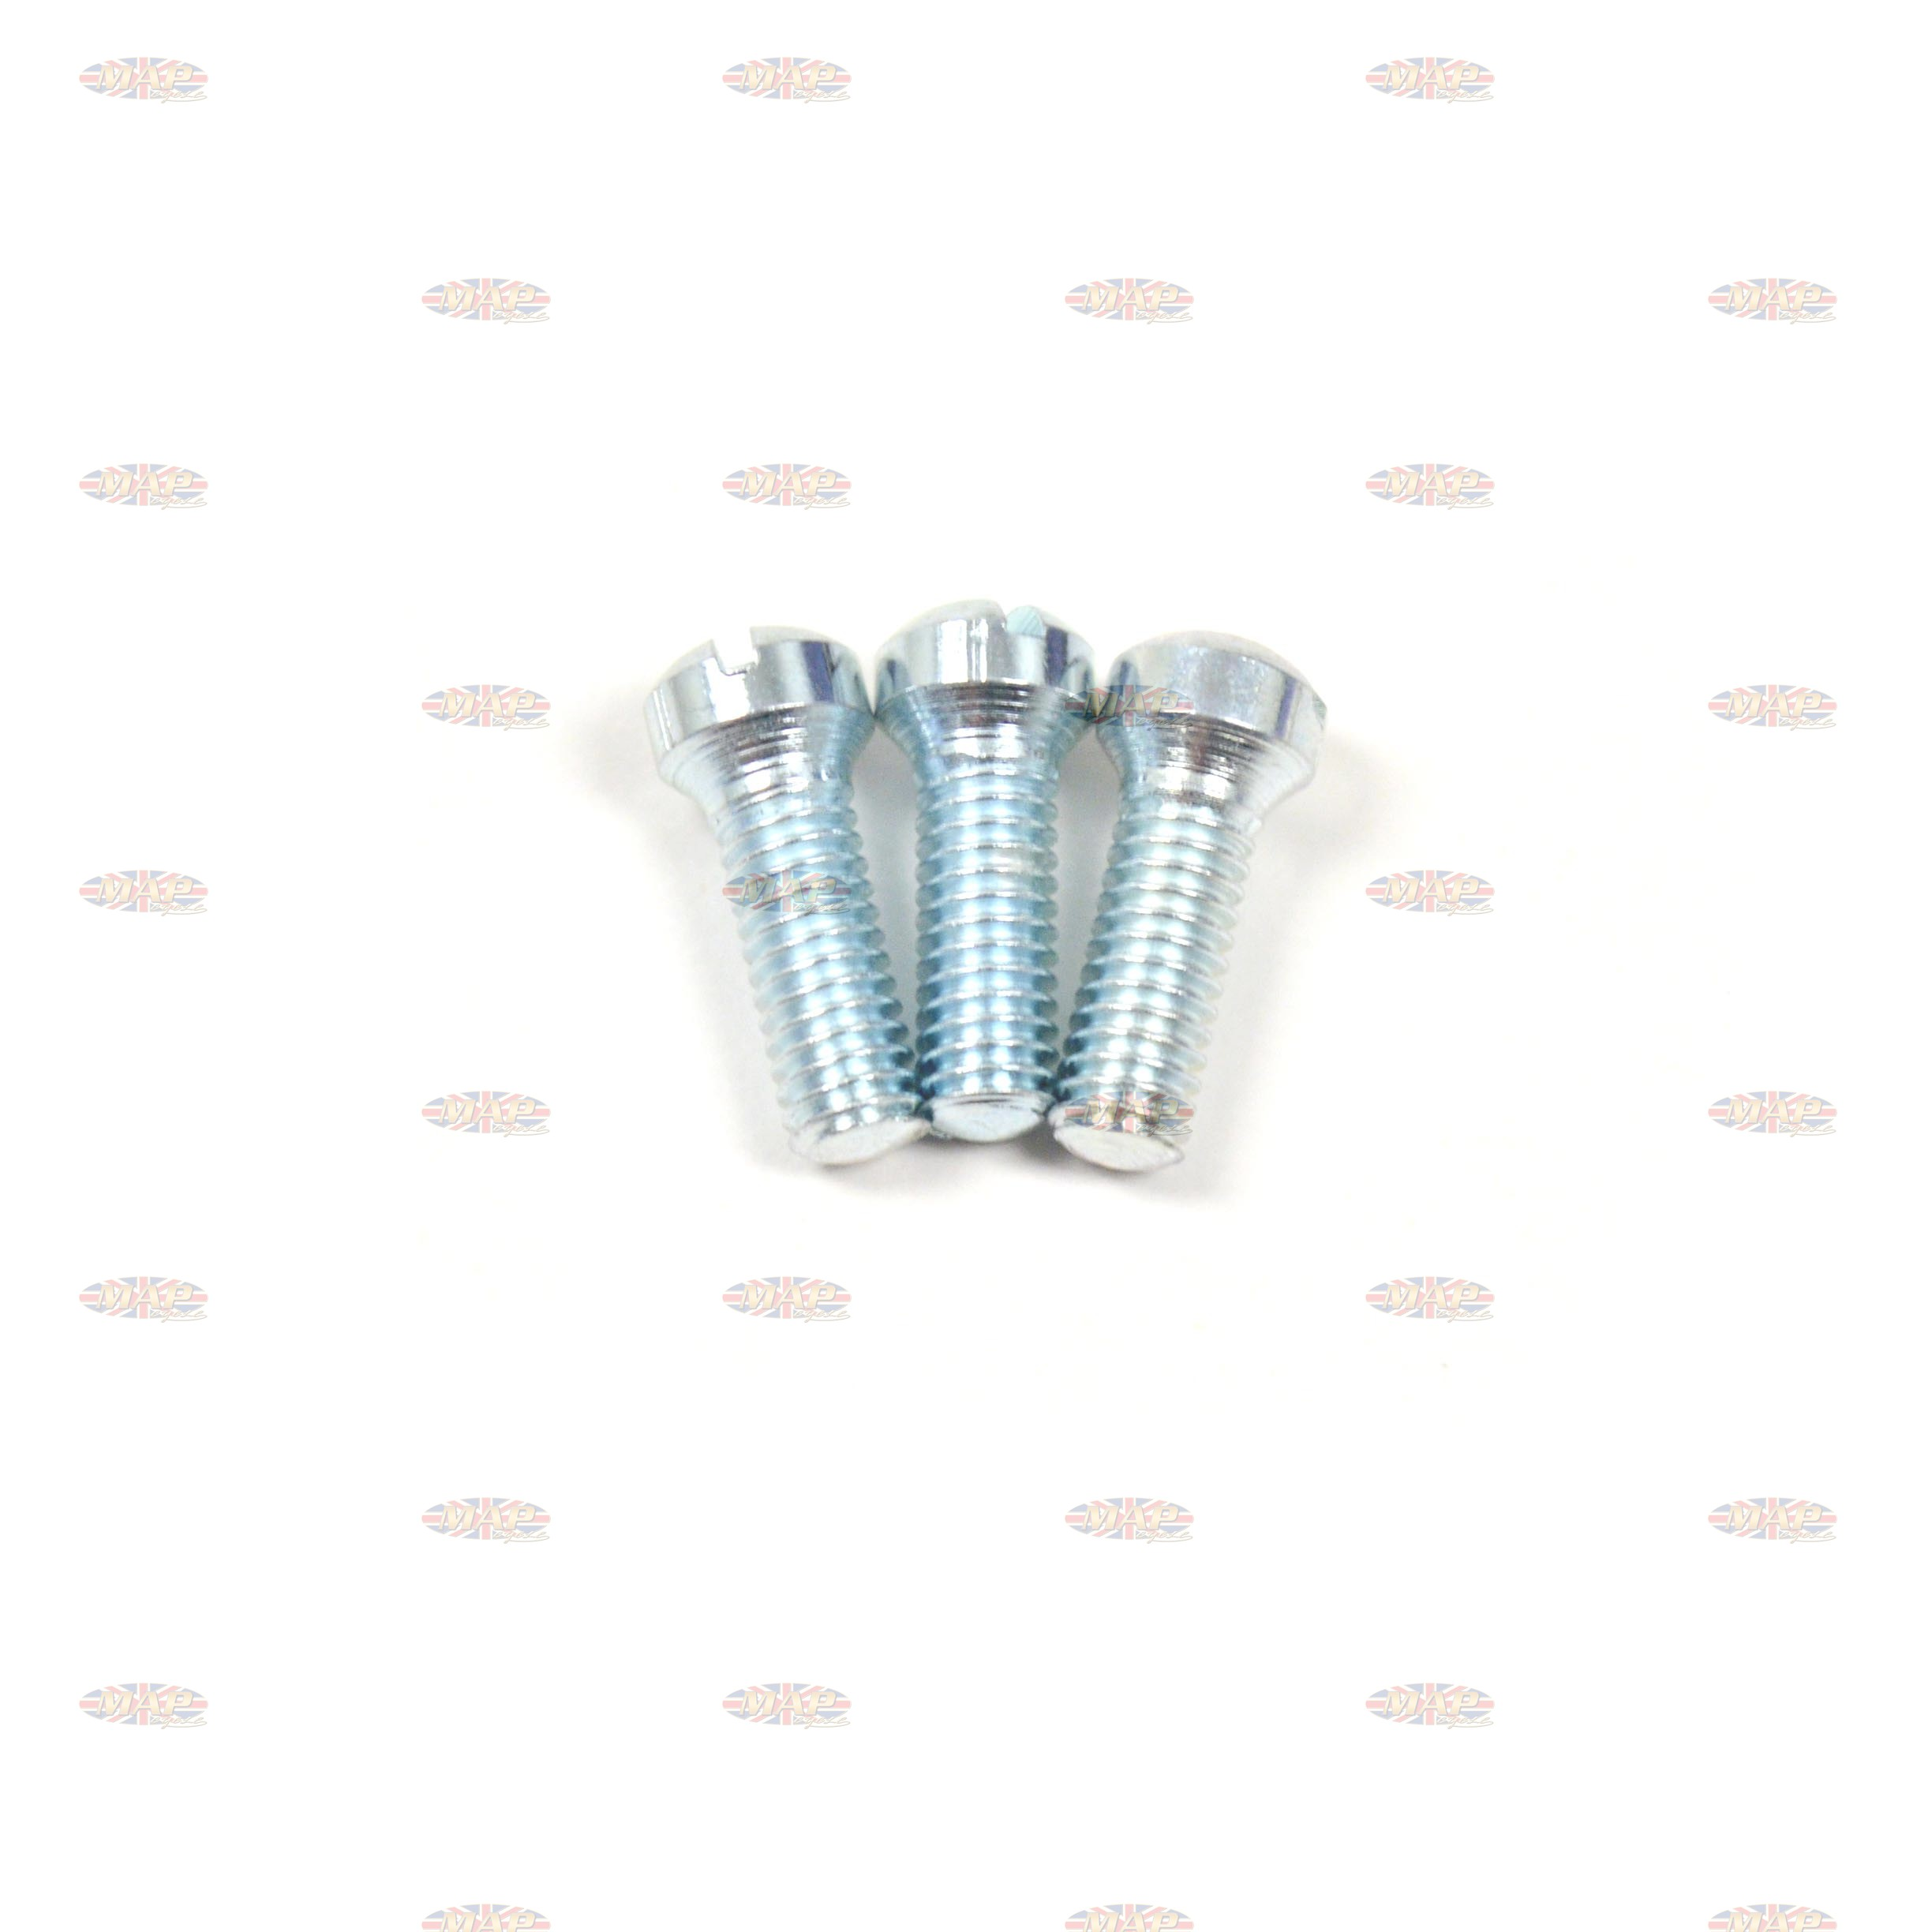 SCREW (DISC) 376/079